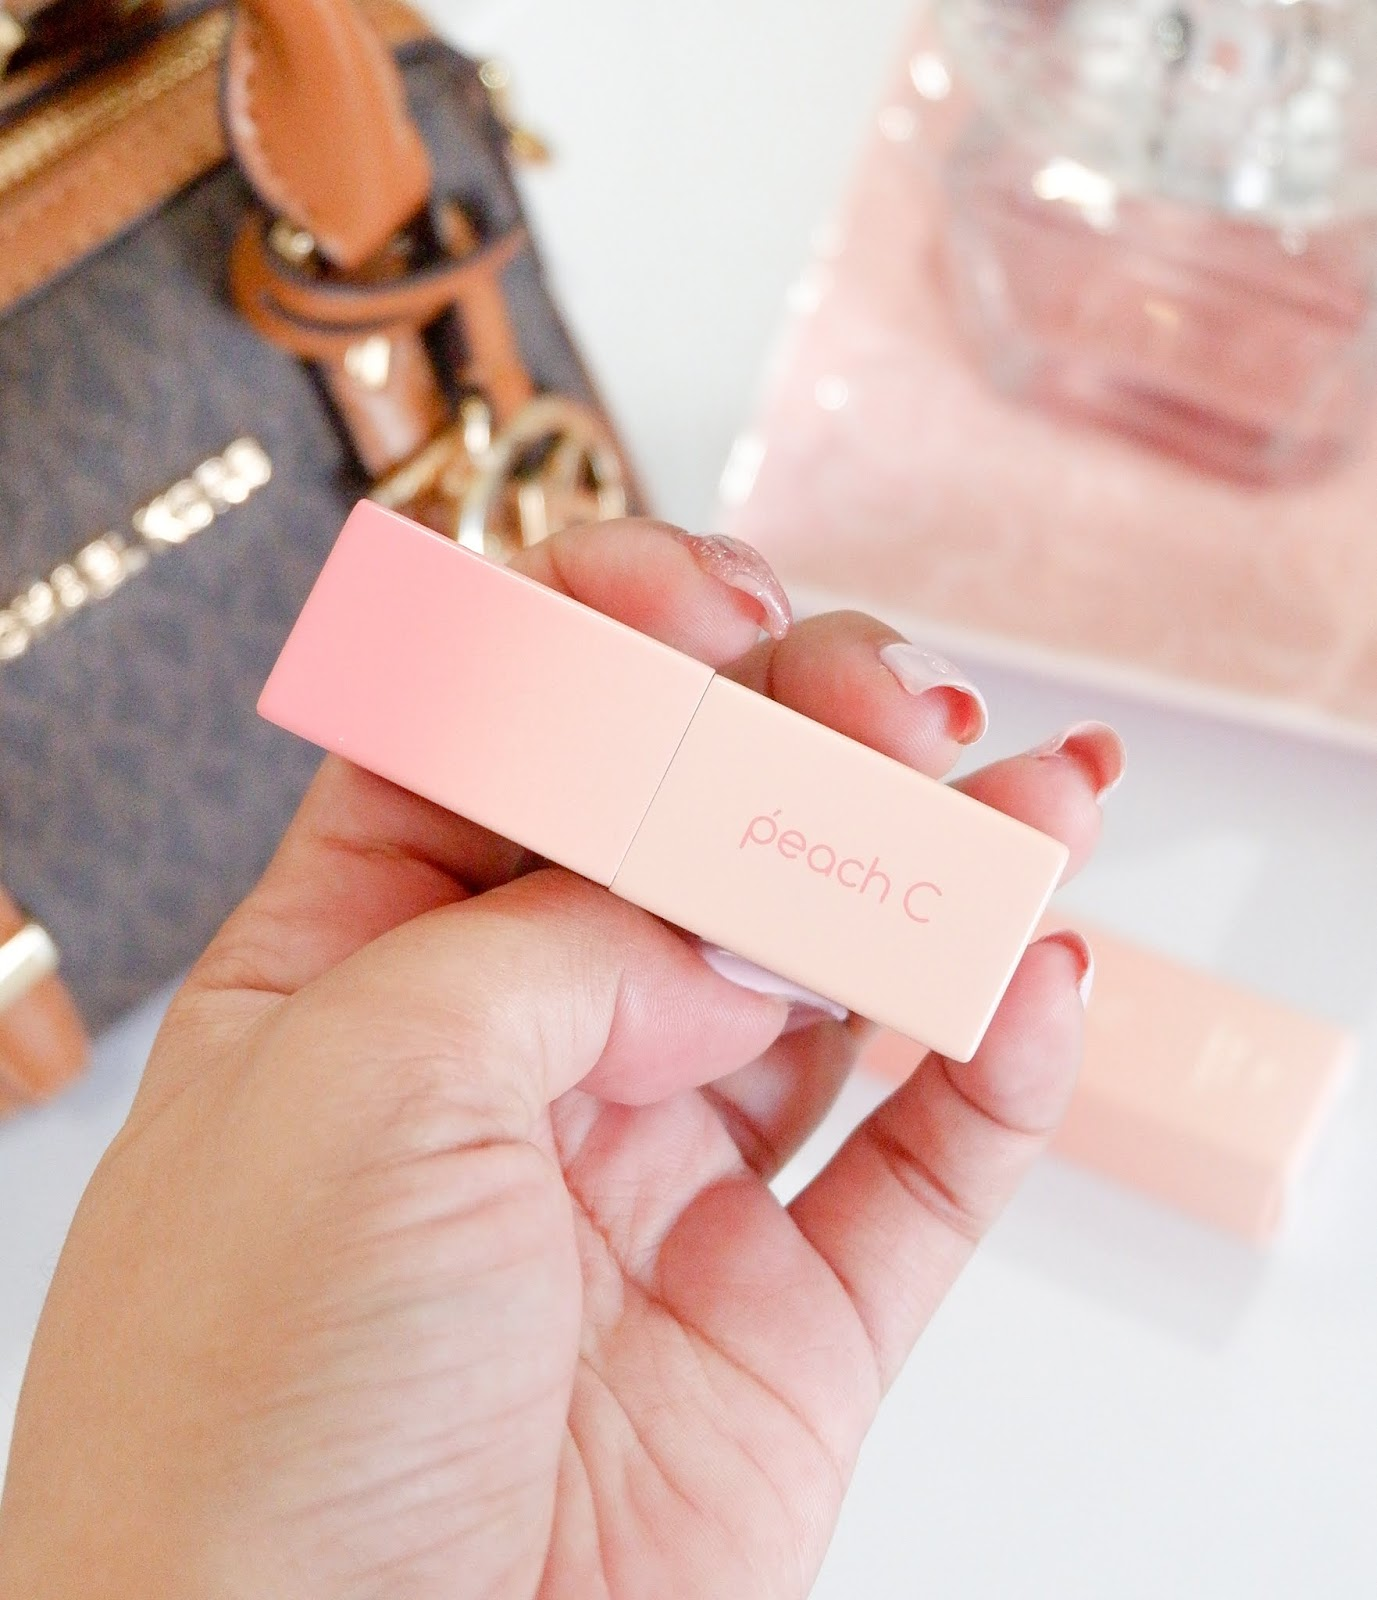 PEACH C: EASY MATTE LIPSTICK IN TANGERINE RED REVIEW